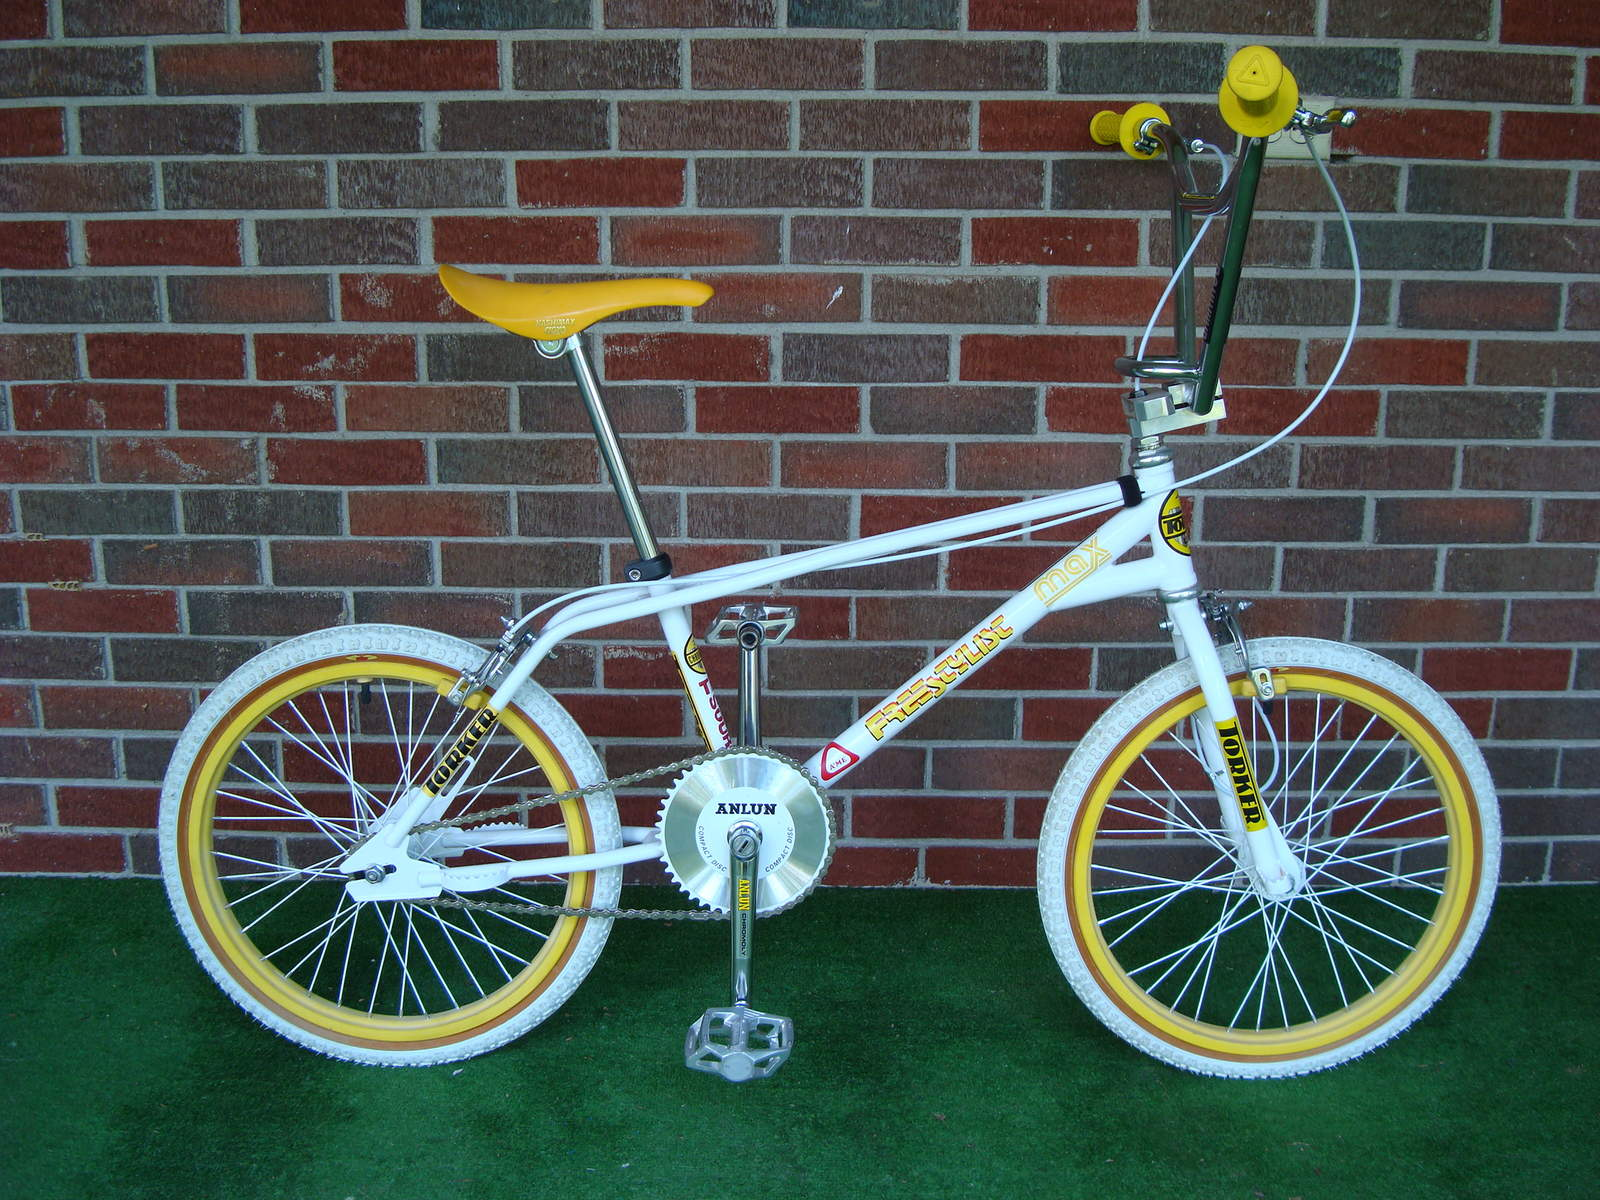 https://s3.amazonaws.com/uploads.bmxmuseum.com/user-images/2135/dsc0489657cd7412ab.jpg